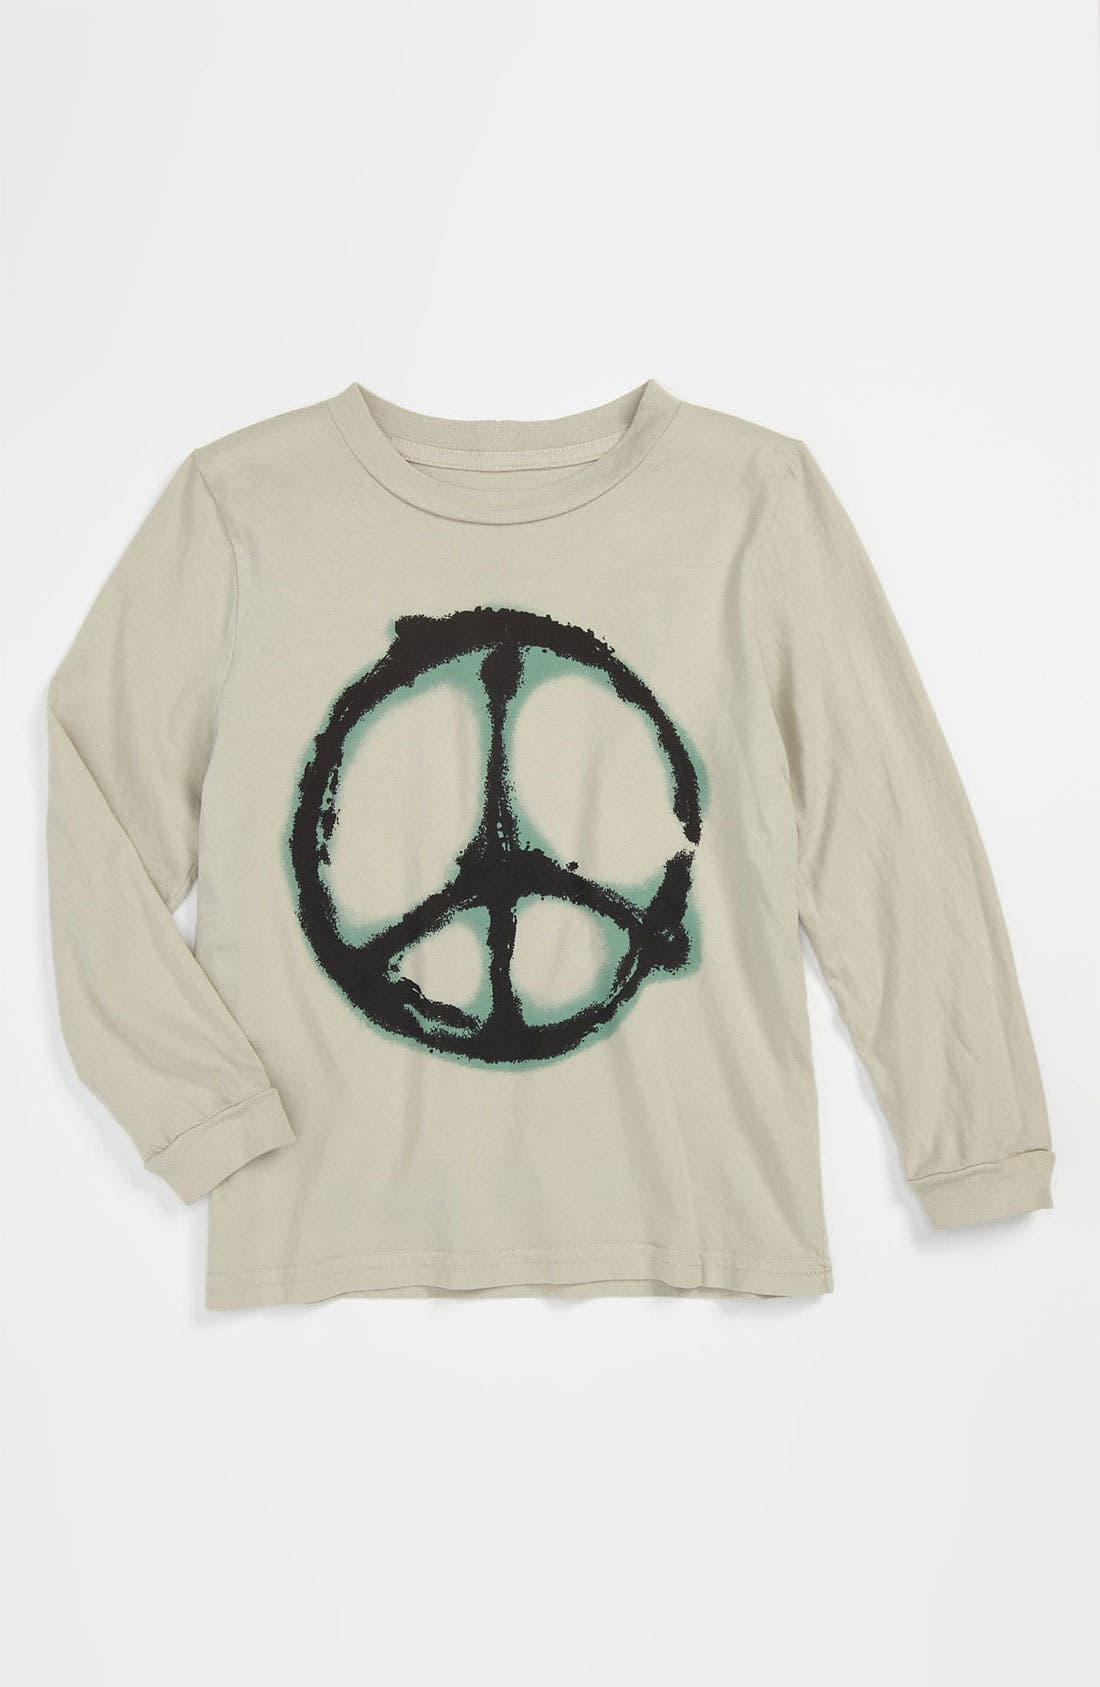 Alternate Image 1 Selected - Peek 'Grafitti Peace' T-Shirt (Toddler, Little Boys & Big Boys)